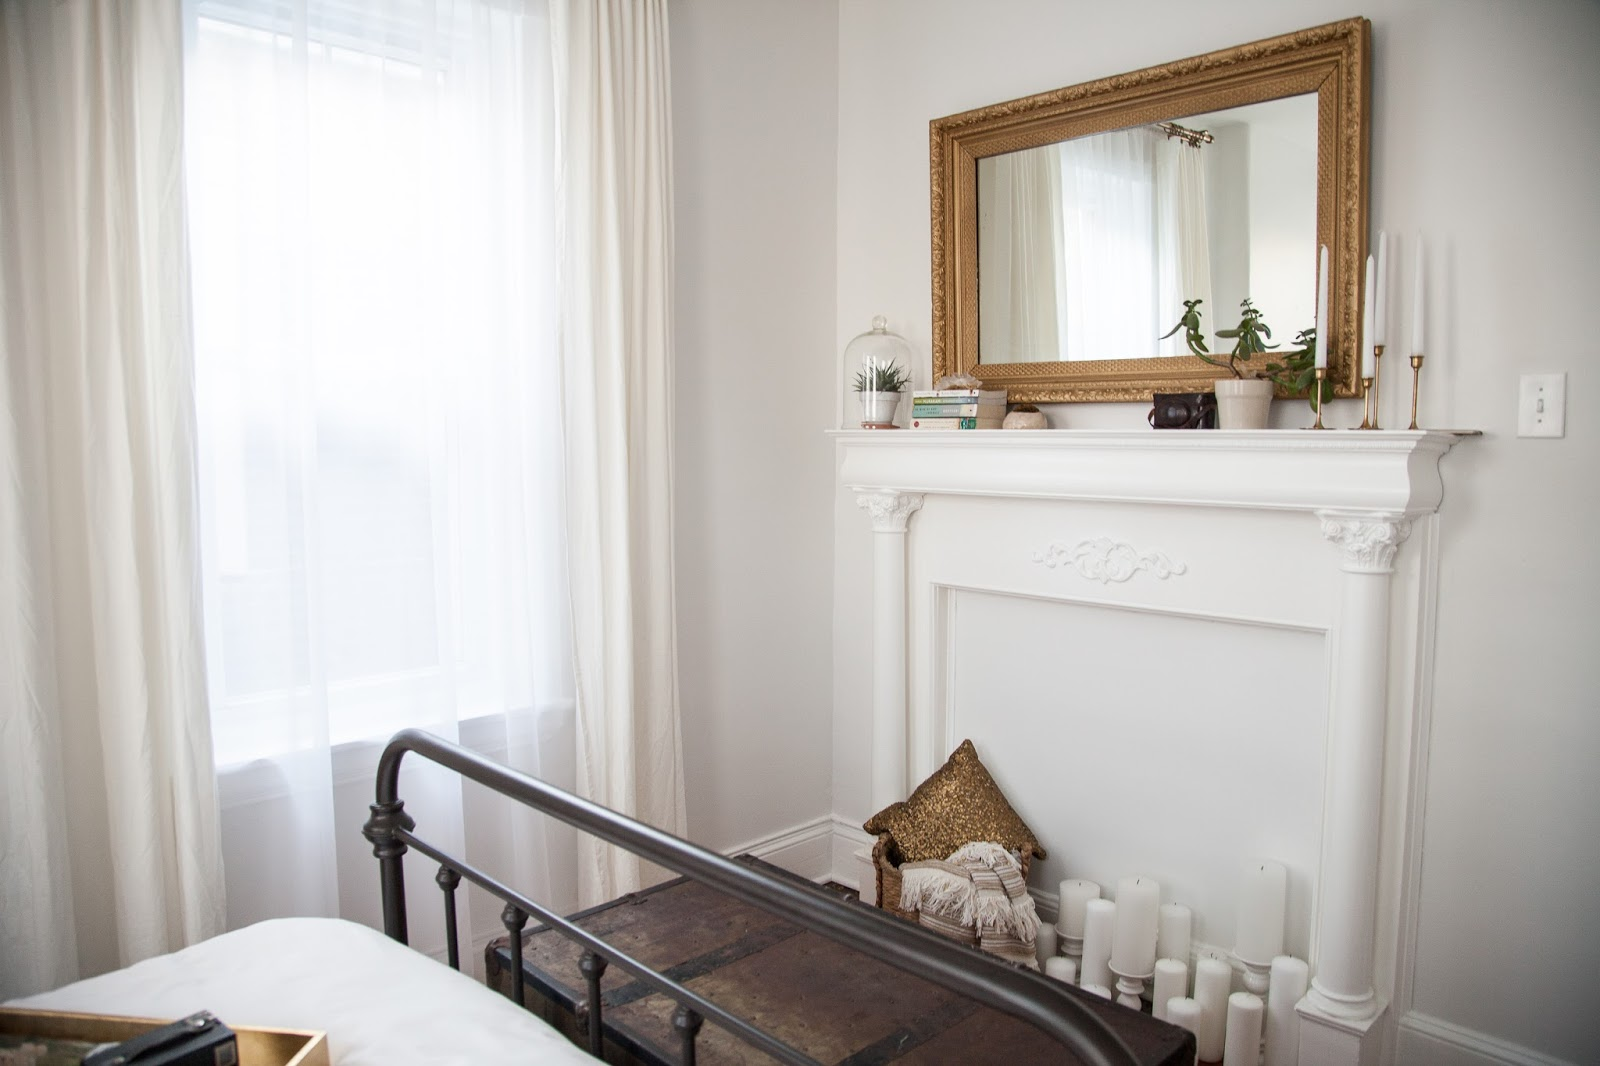 Guest Room with Vintage Mantel and Gold Mirror